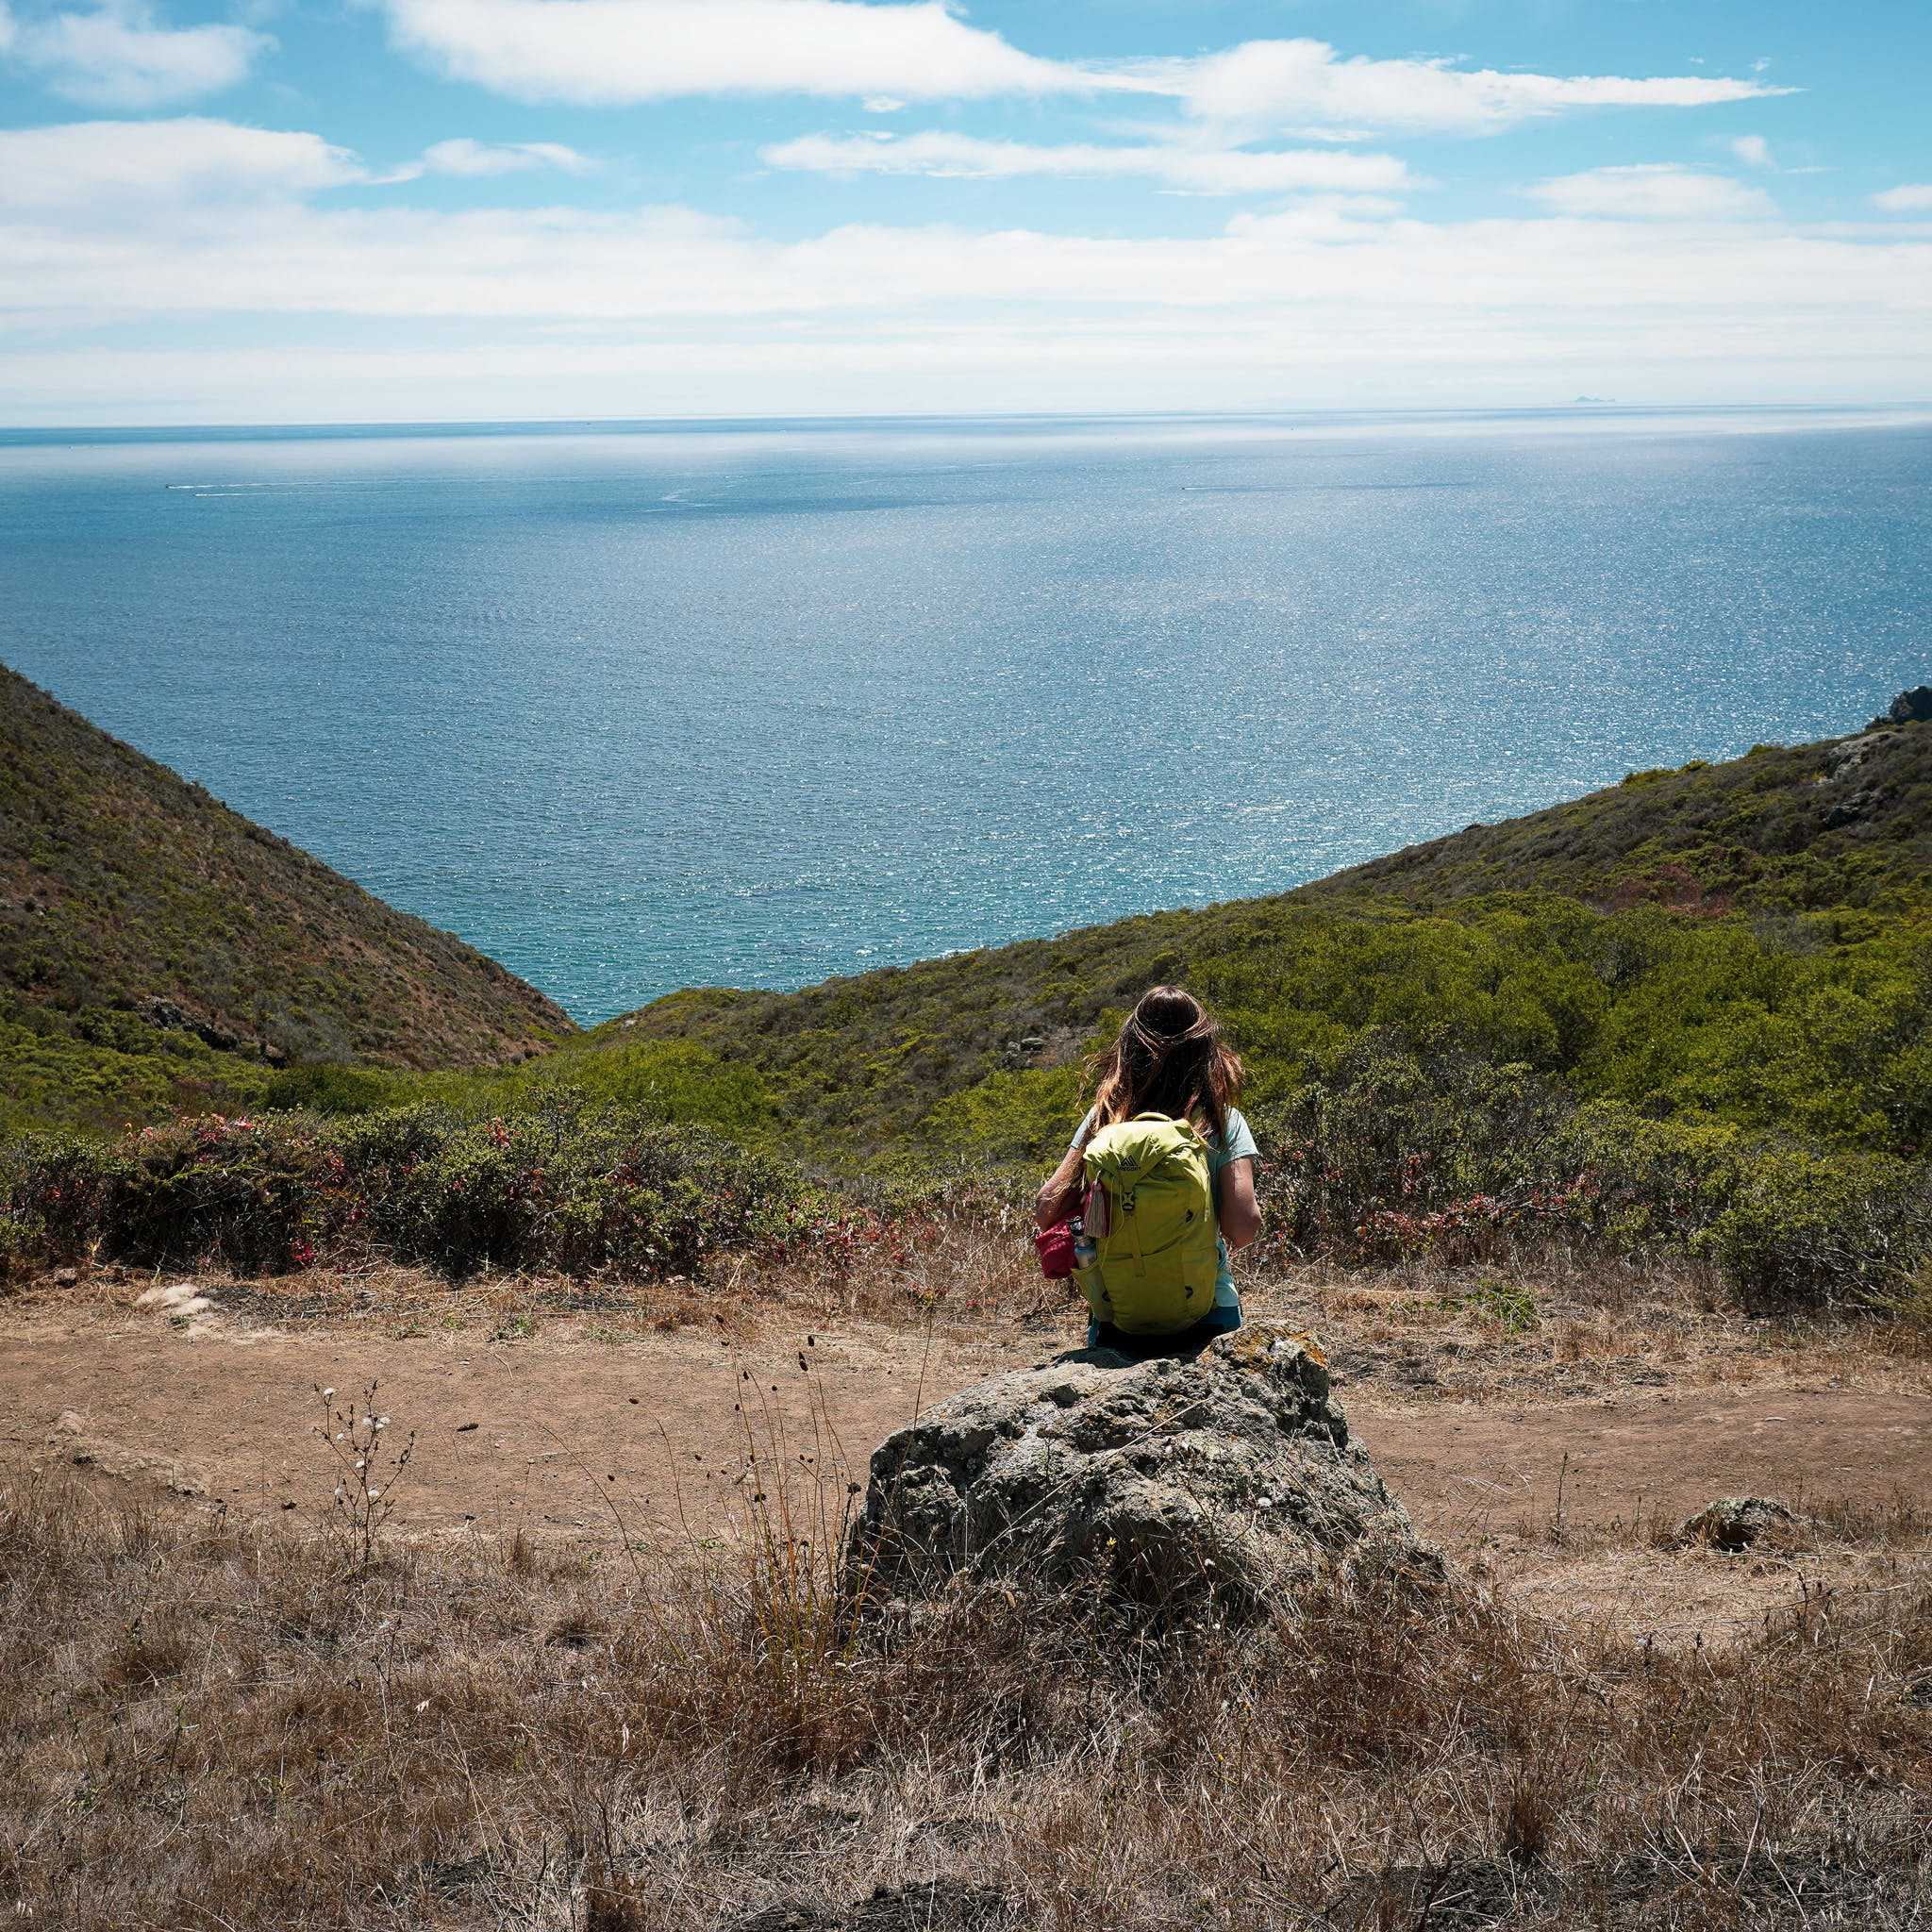 Woman resting on a rock overlooking the Pacific ocean on the Coastal Trail in the Marin Headlands